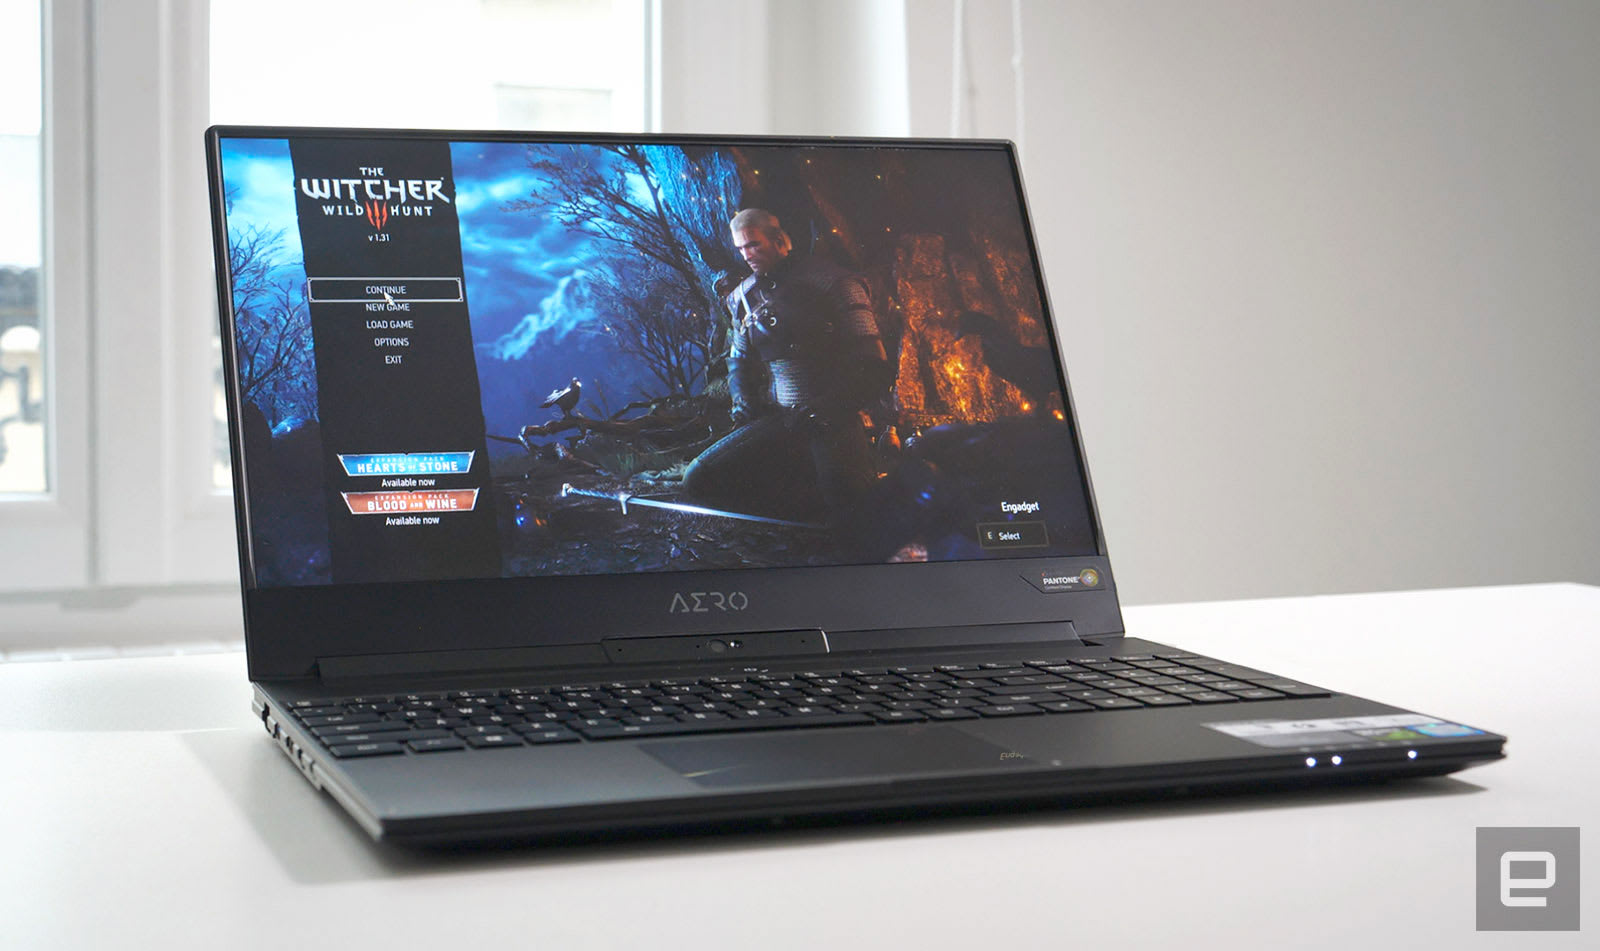 Best 14 Inch Laptop 2020 The best lightweight gaming laptops